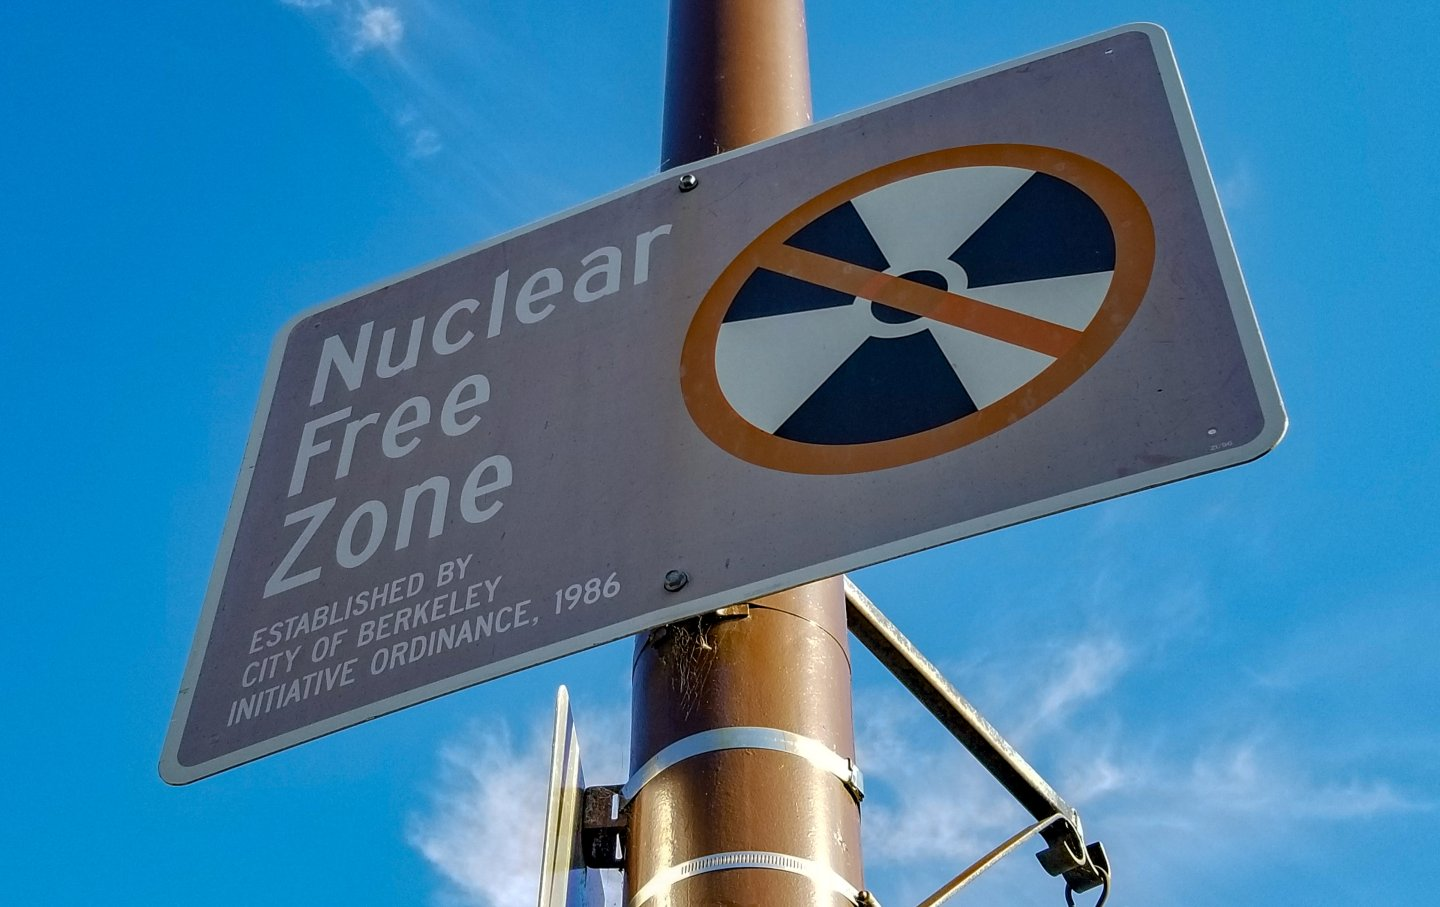 Our Nation Needs a Wake-Up Call to the Nuclear Threat